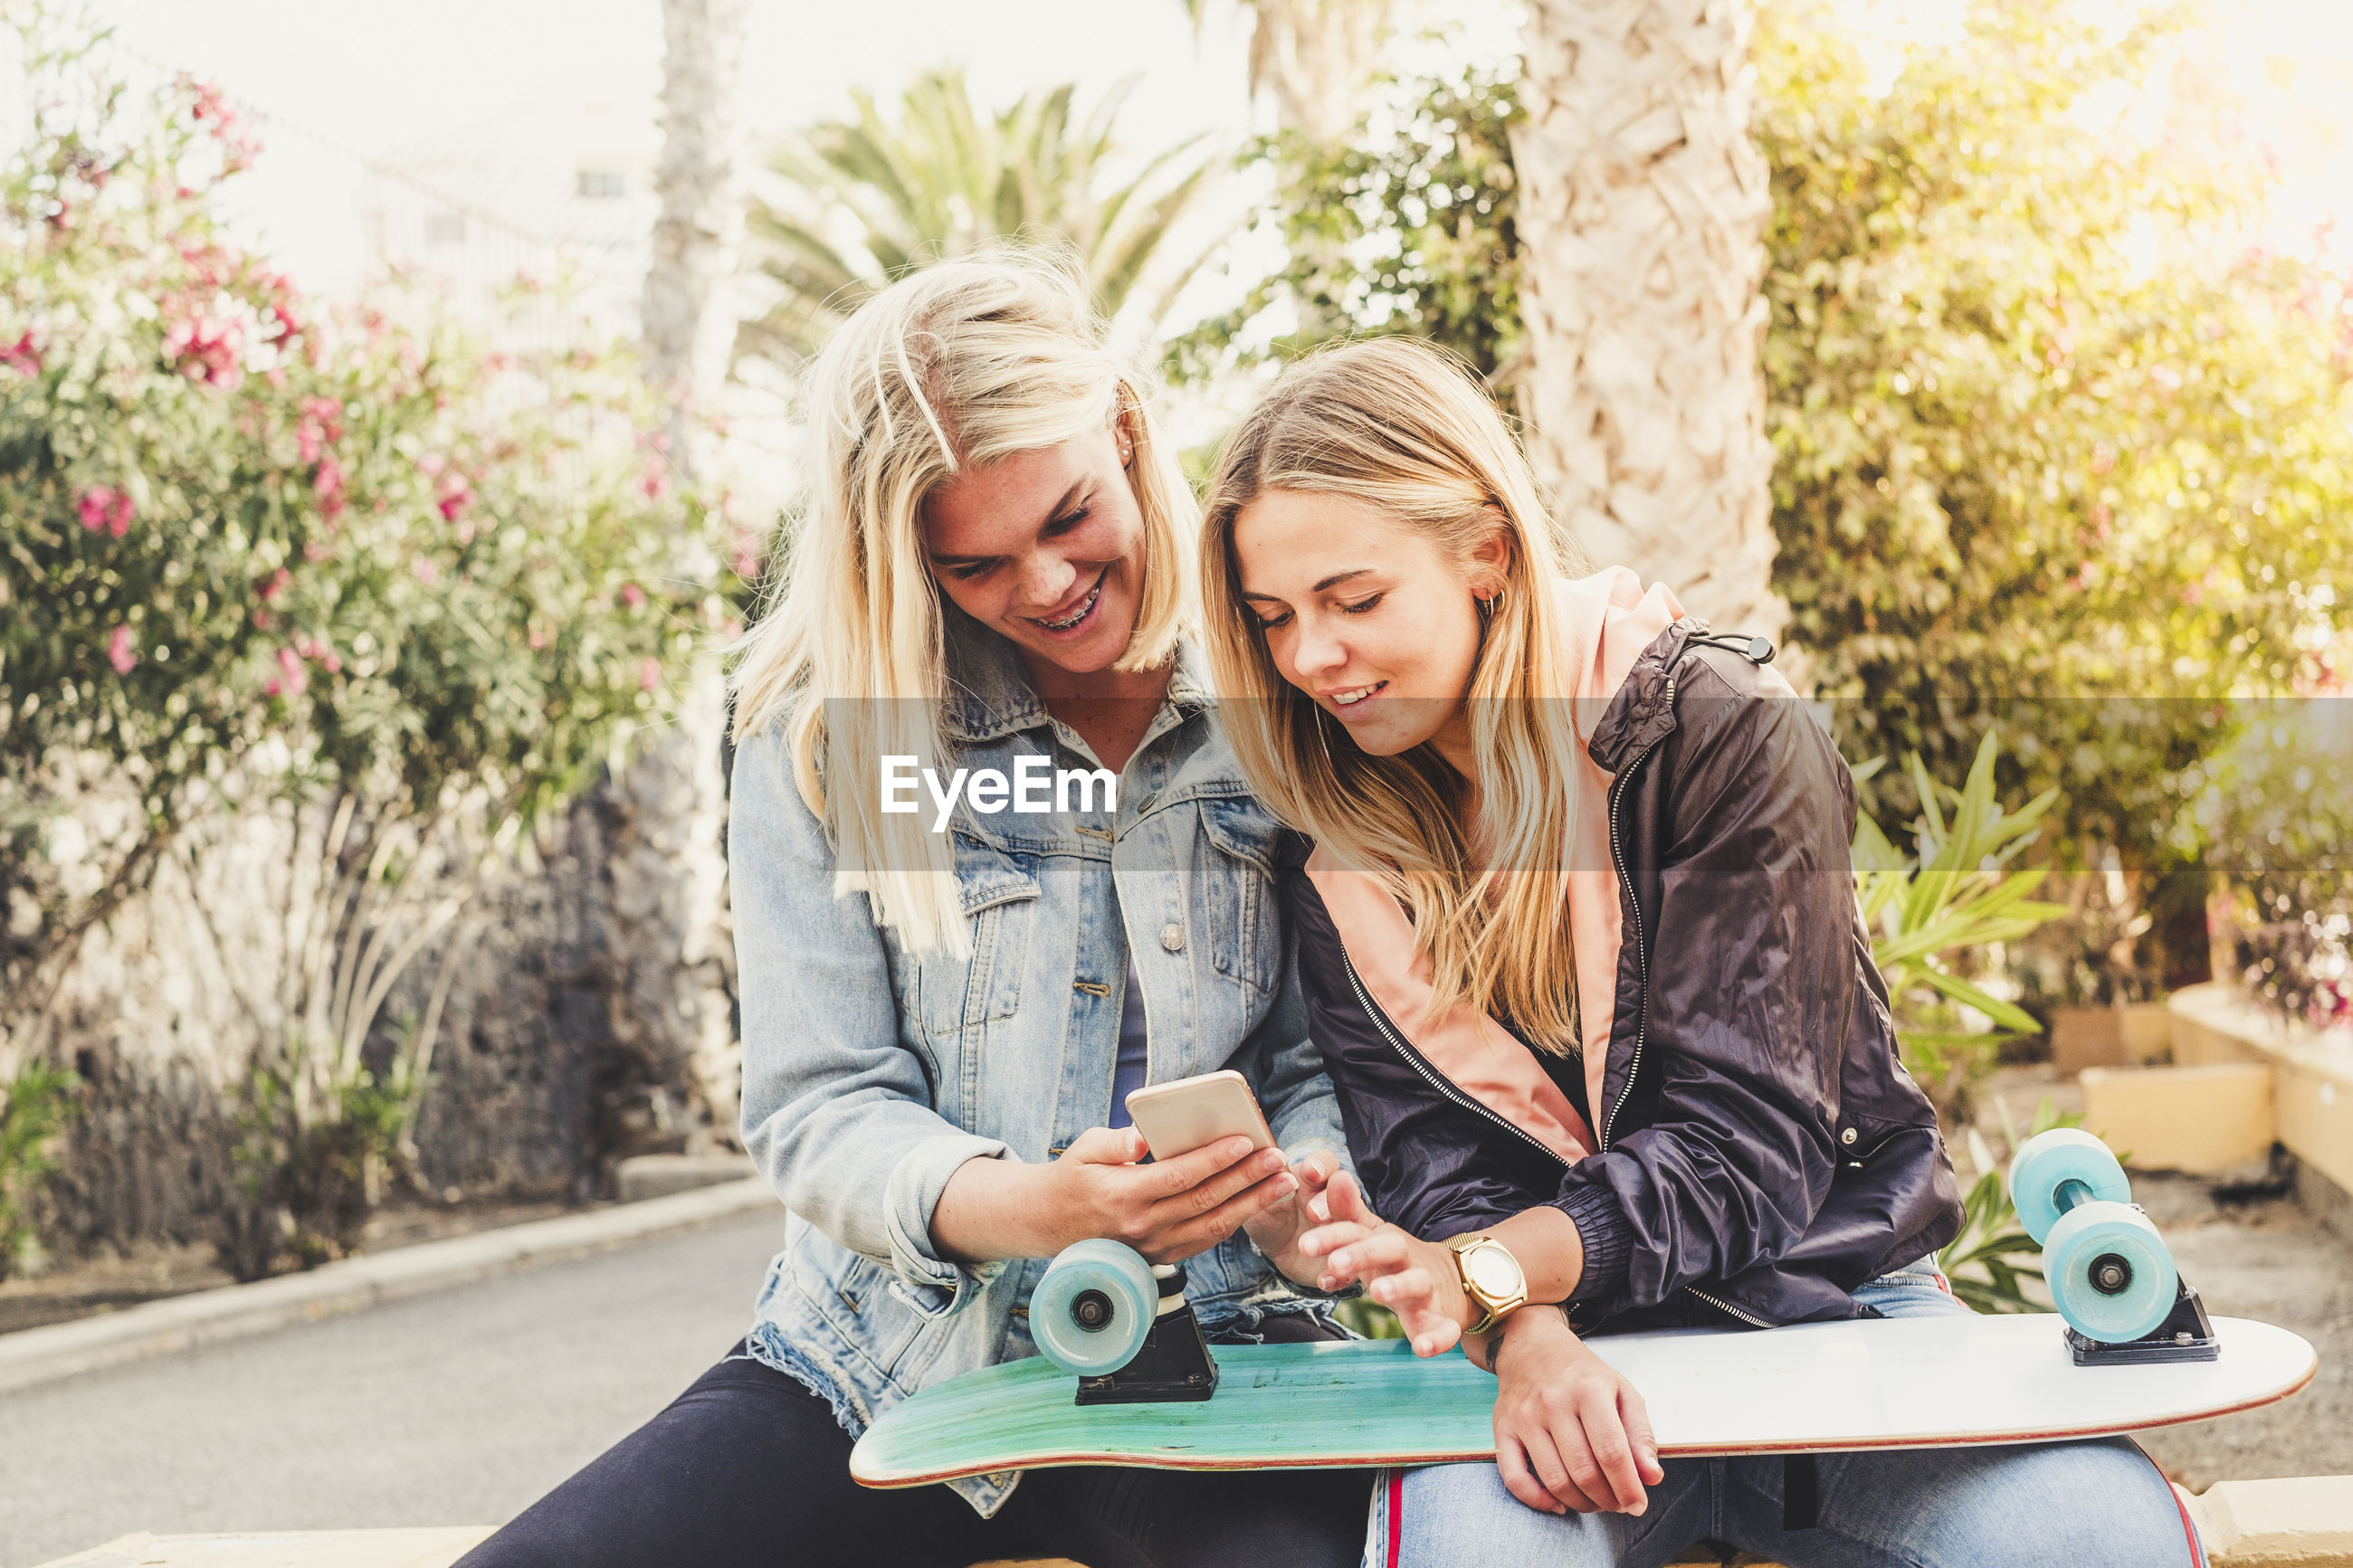 Smiling friends using smart phone while sitting in park